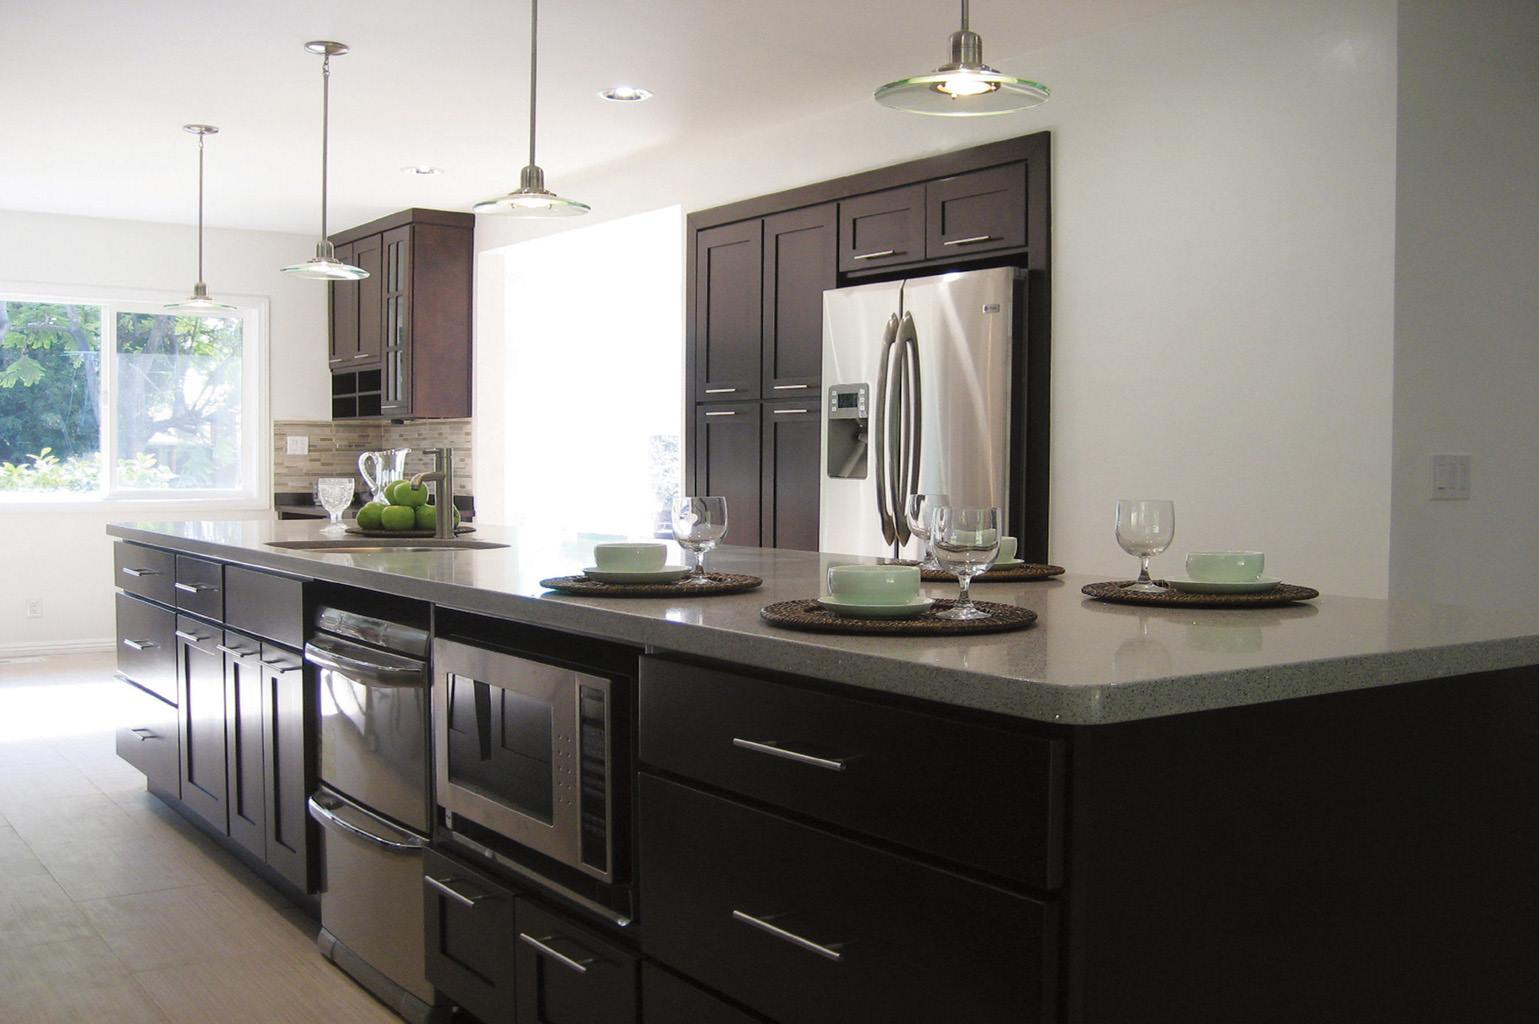 Kitchen Cabinets For Small Kitchens: Talk To A Pro About Stock Kitchen Cabinets & Remodeling